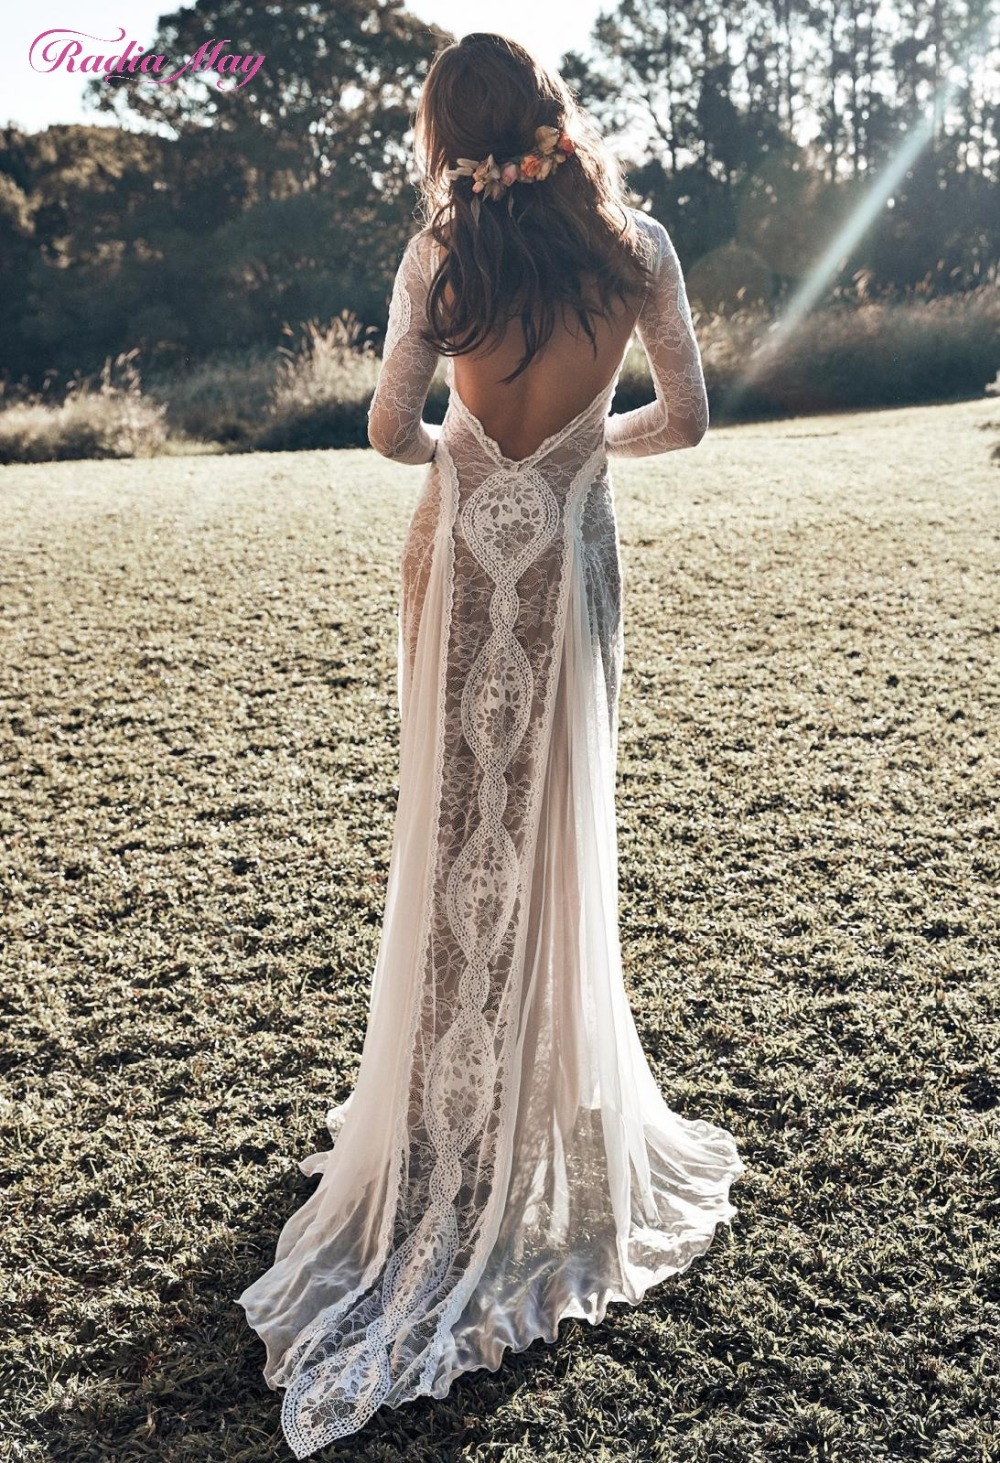 07131817f7 Vintage Lace Backless Boho Beach Wedding Dresses Long Sleeve Nude Lining  Country Bohemian Wedding Gowns Hippie